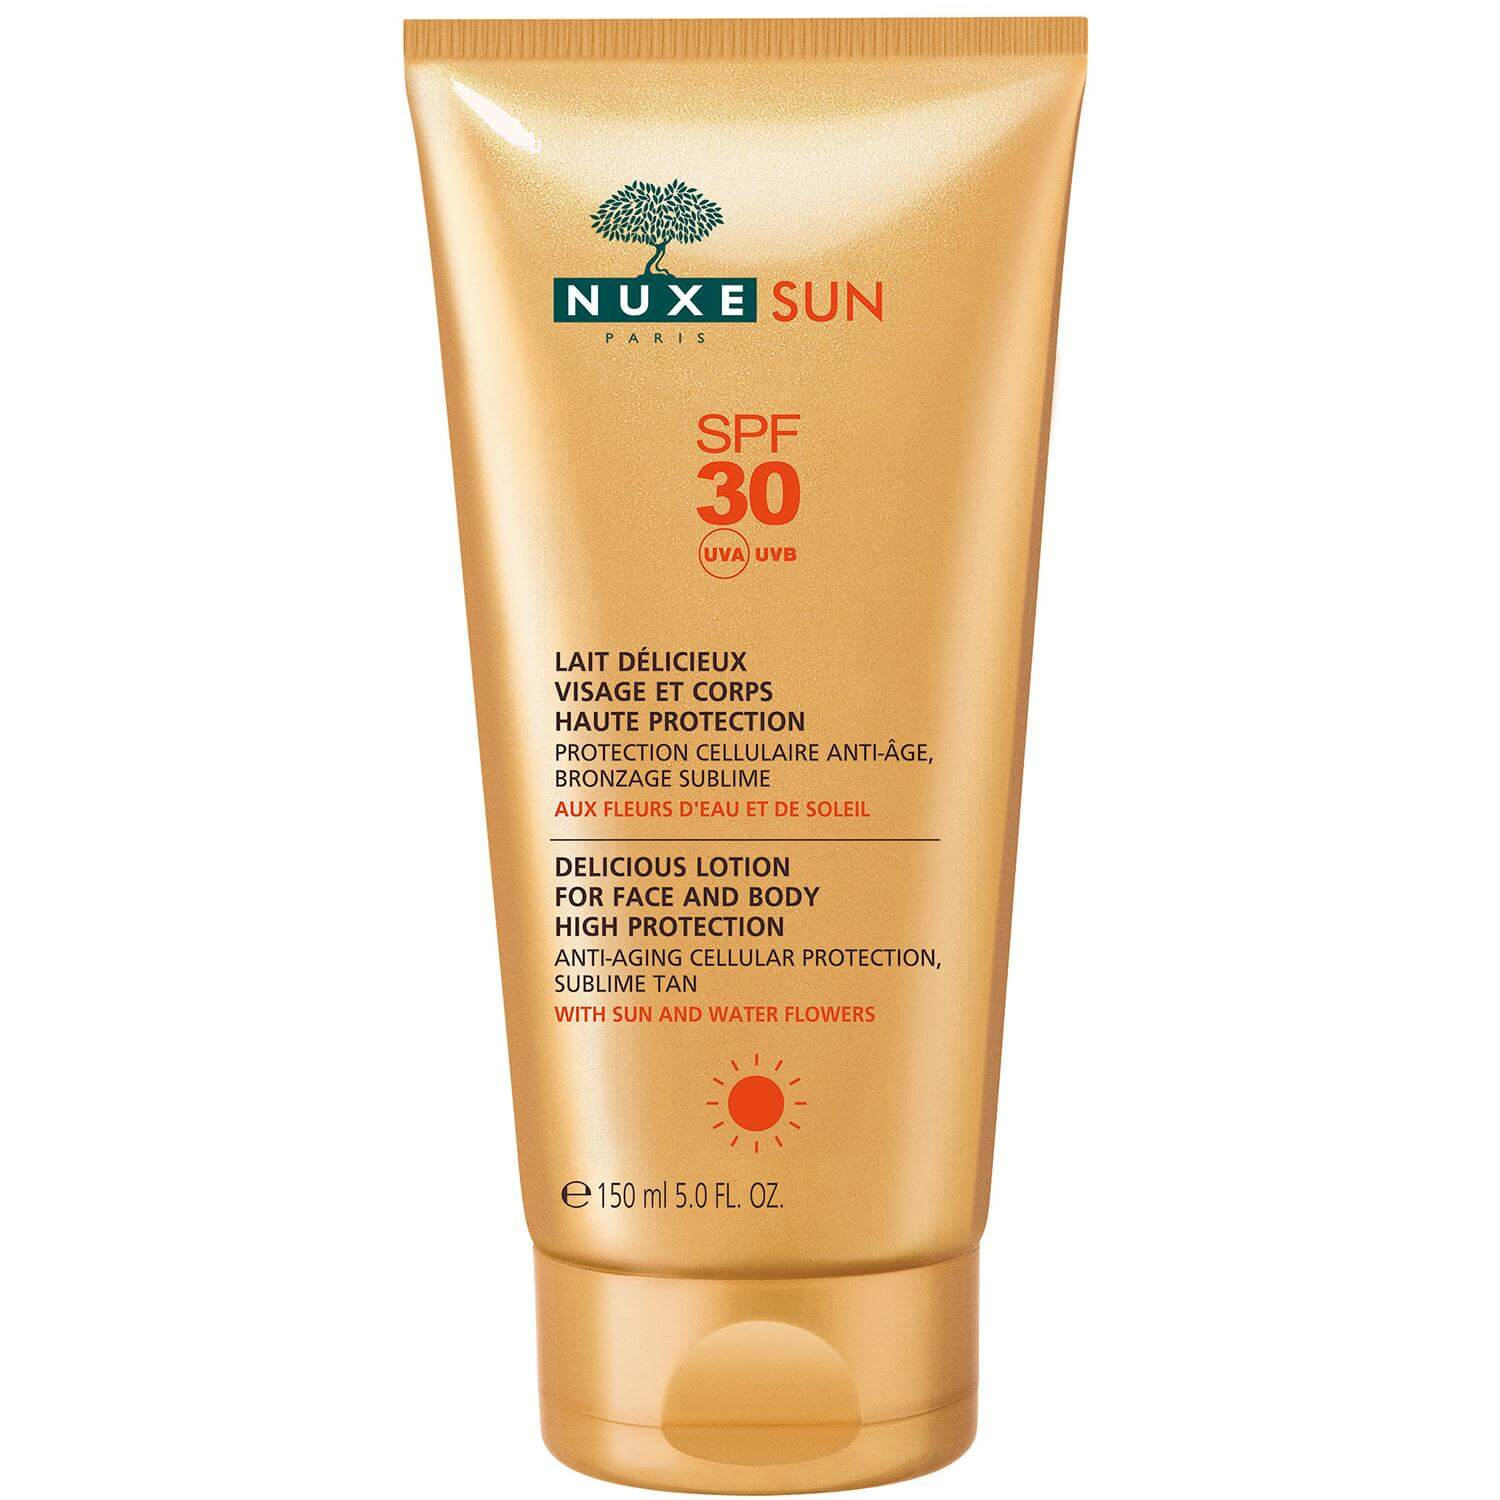 Nuxe Sun Milky Lotion for Face & Body Αντηλιακό Γαλάκτωμα για Πρόσωπο & Σώμα Spf30 150ml